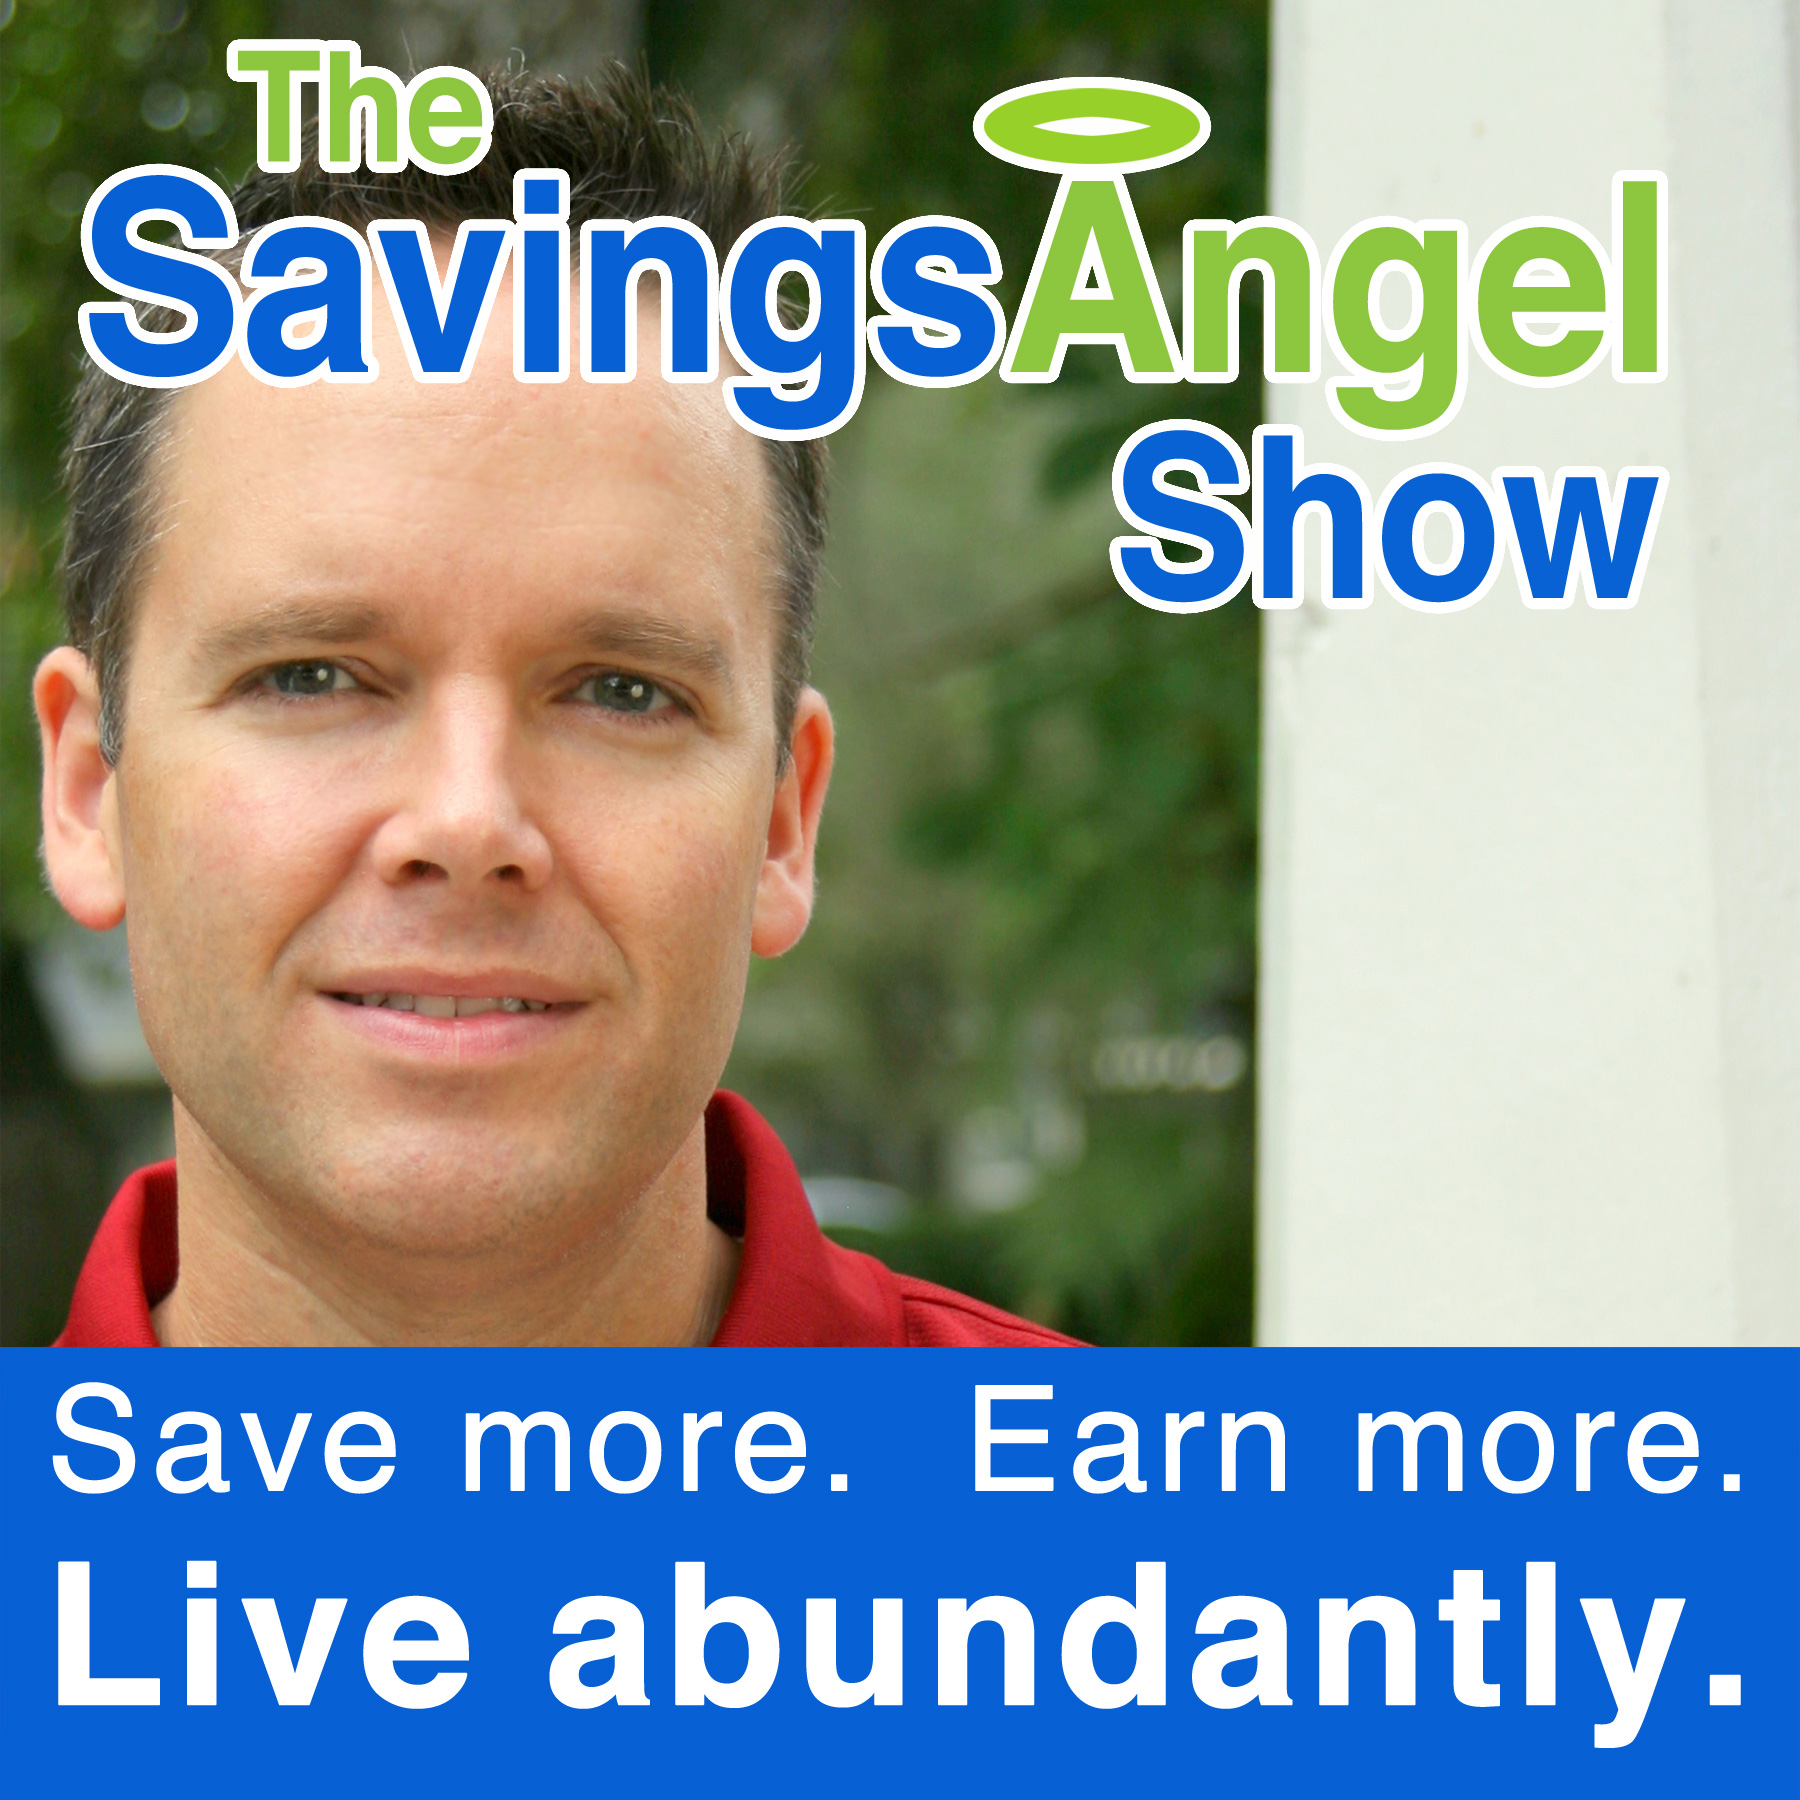 The SavingsAngel Show with Josh Elledge